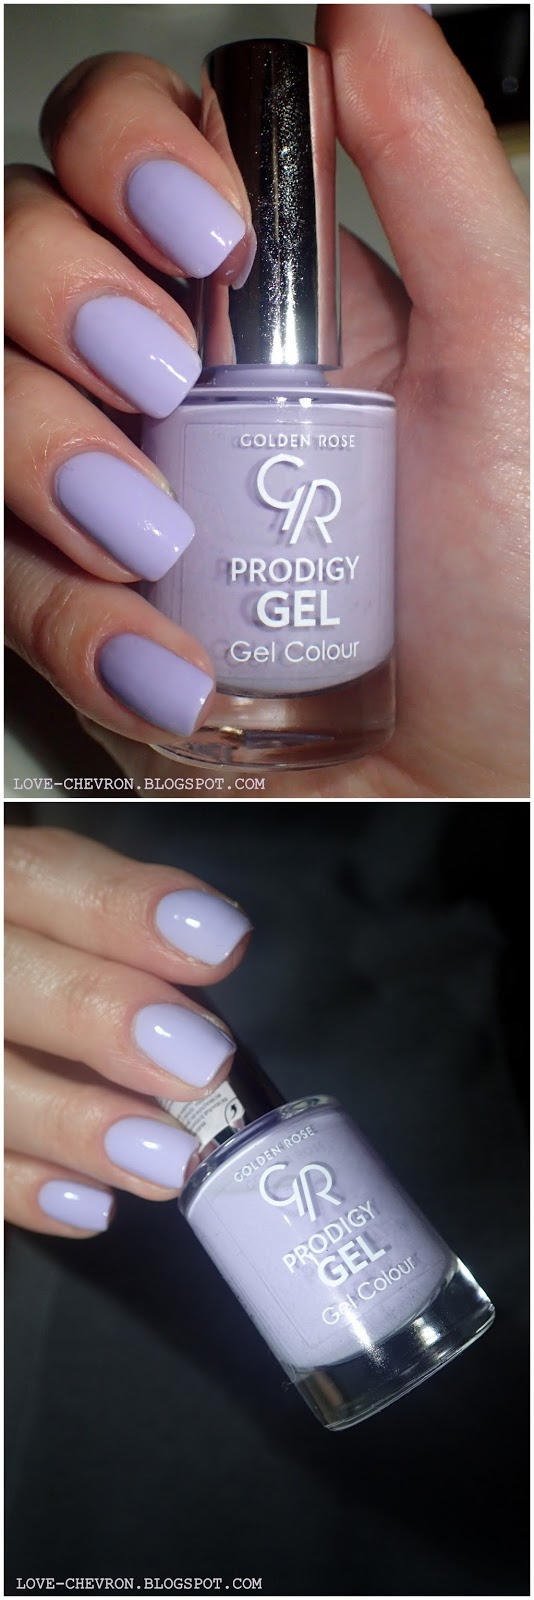 golden rose prodigy gel 5